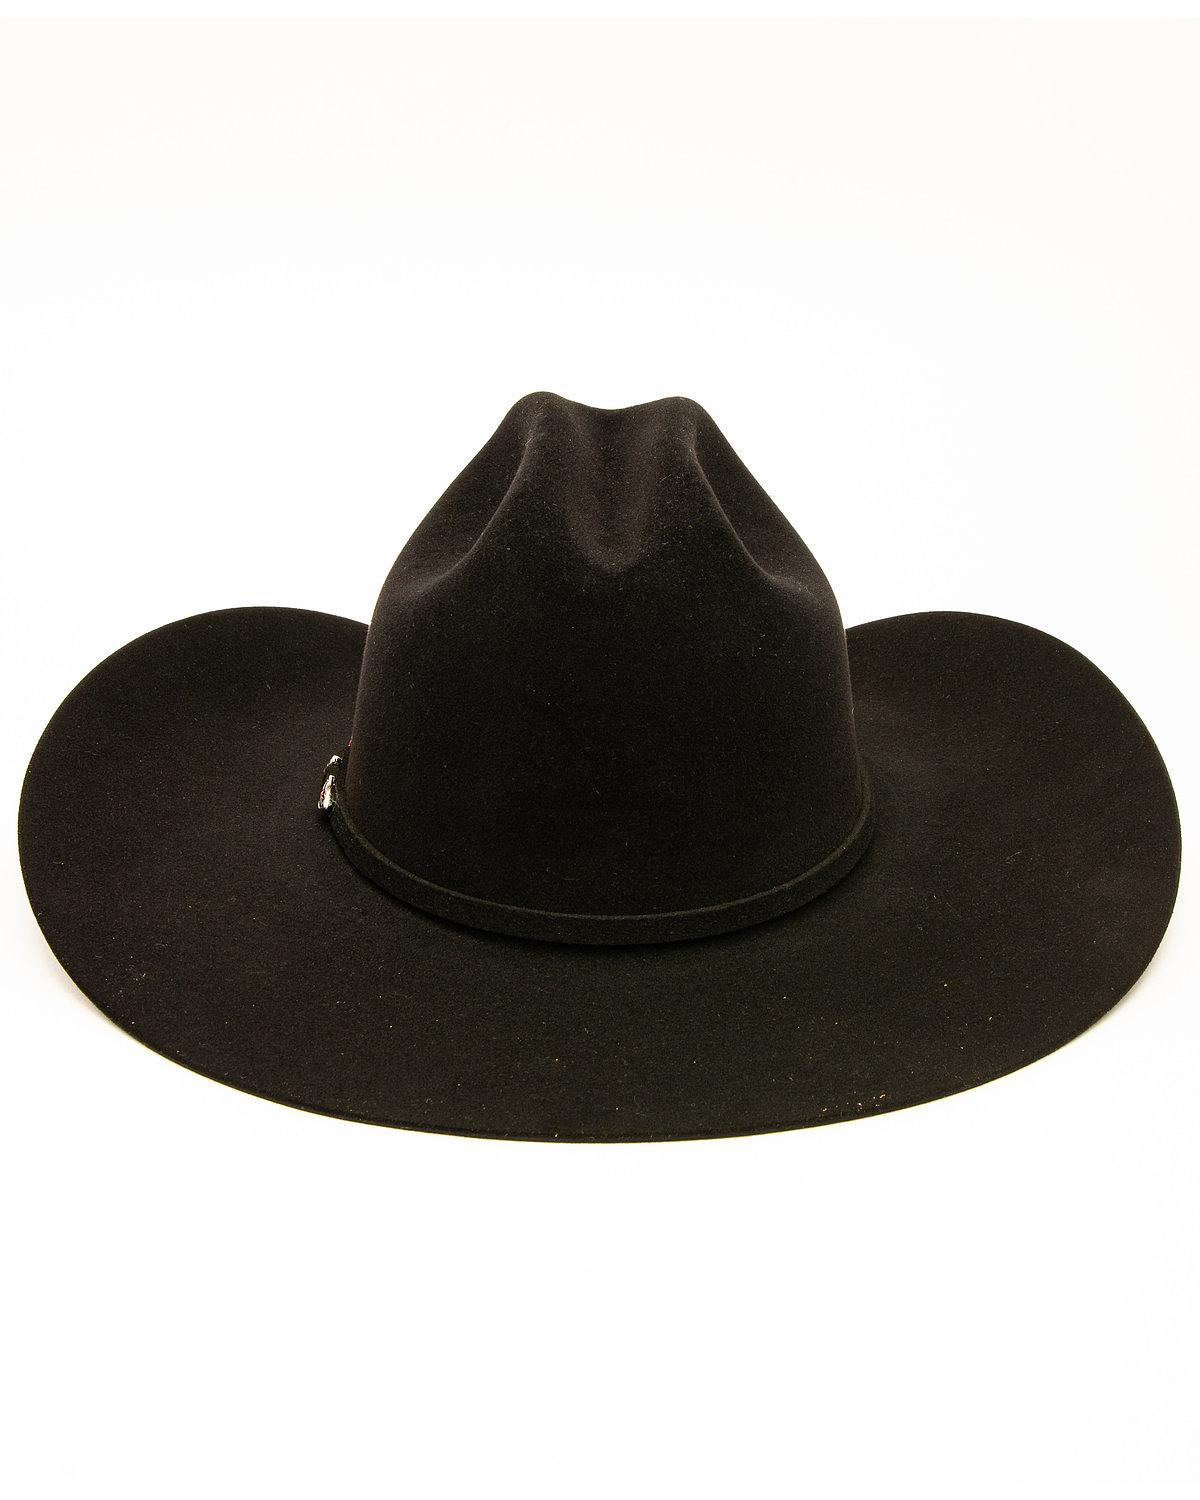 6c06705bc50f2b Rodeo King Men's 10X Low Felt Hat - SU | eBay